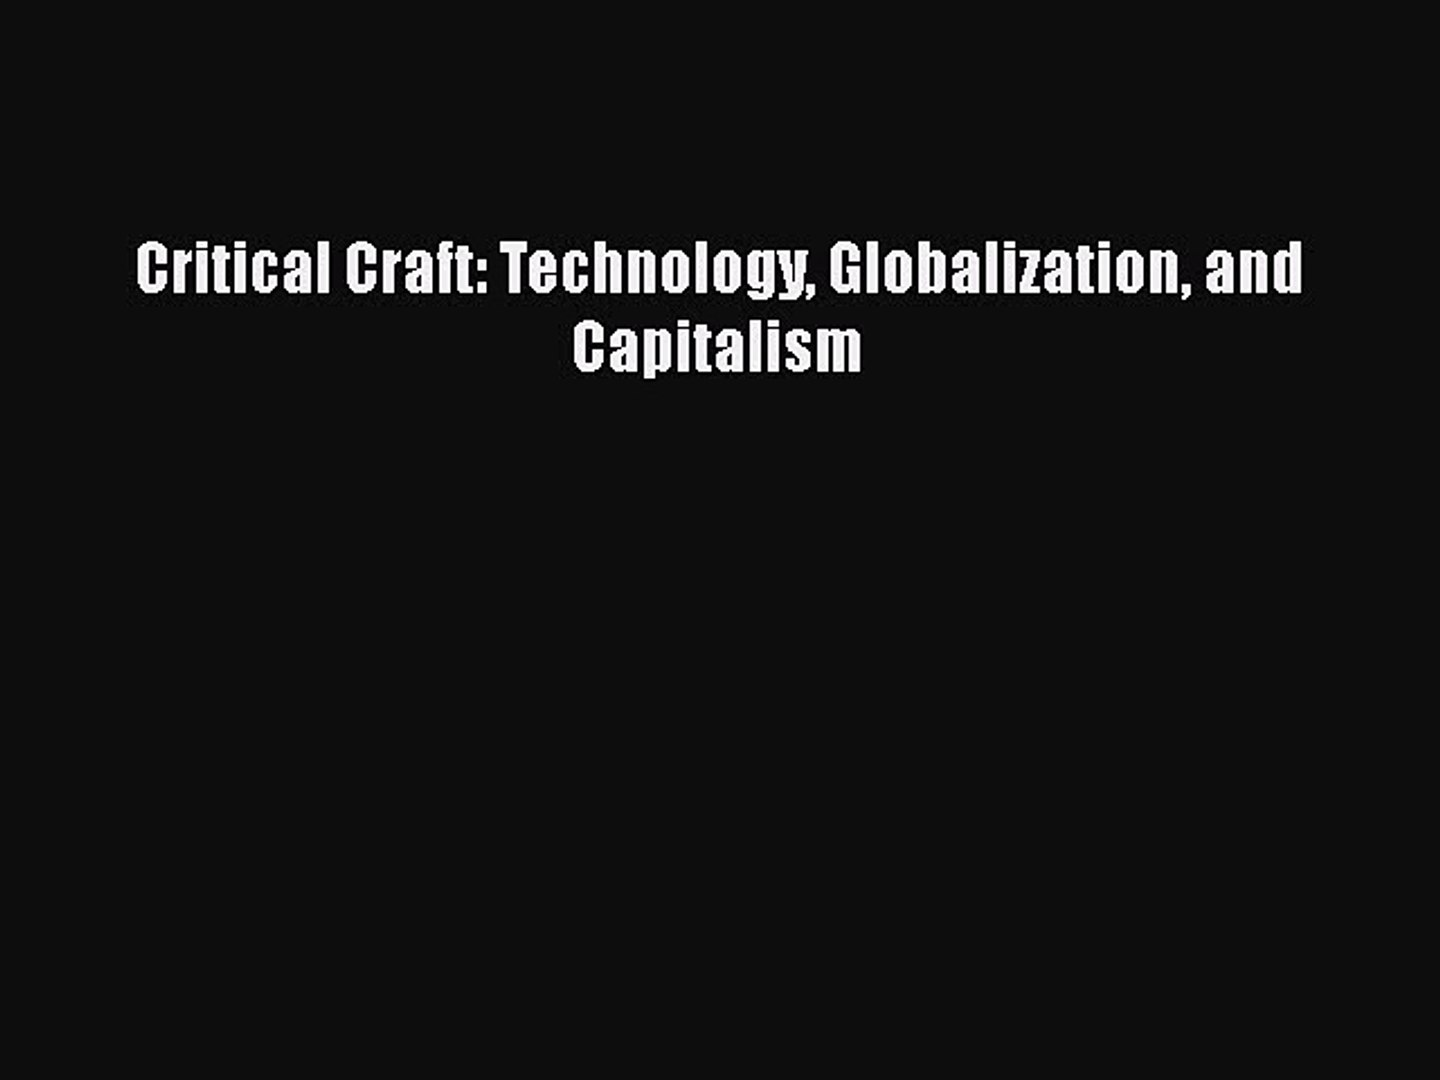 Critical Craft: Technology, Globalization, and Capitalism